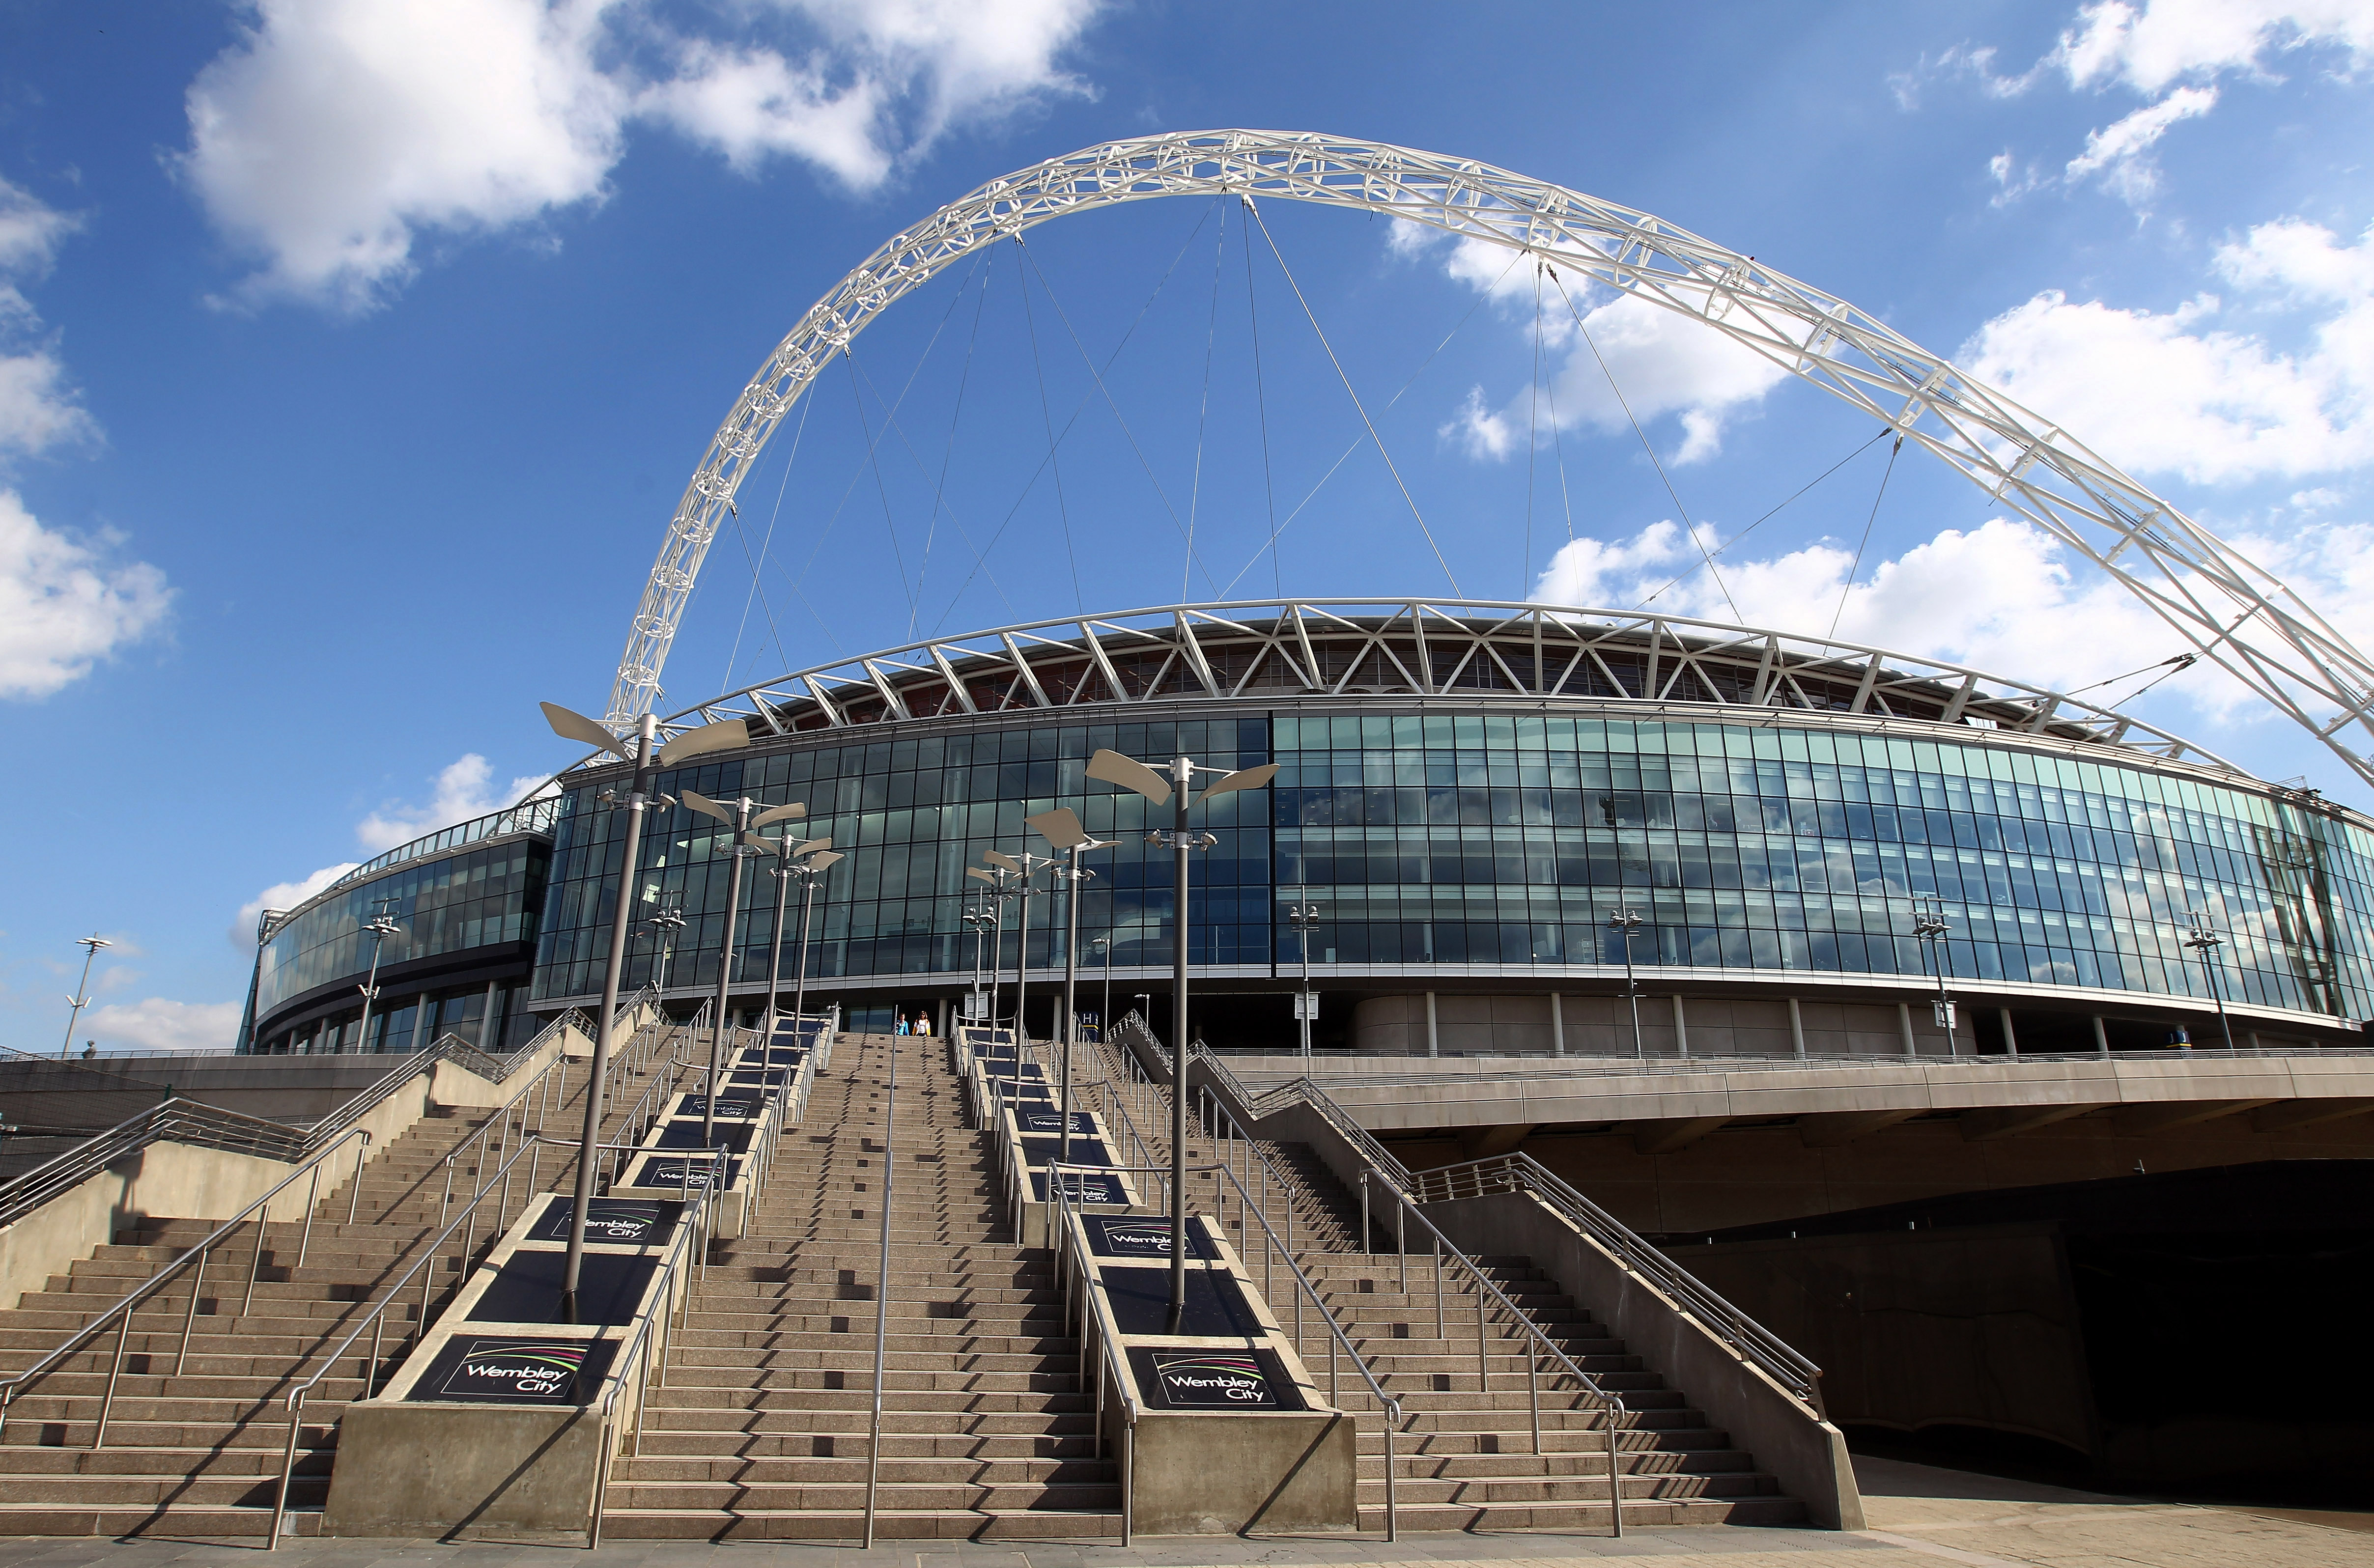 Wembley Stadium has hosted NFL games since 2007. (Getty)